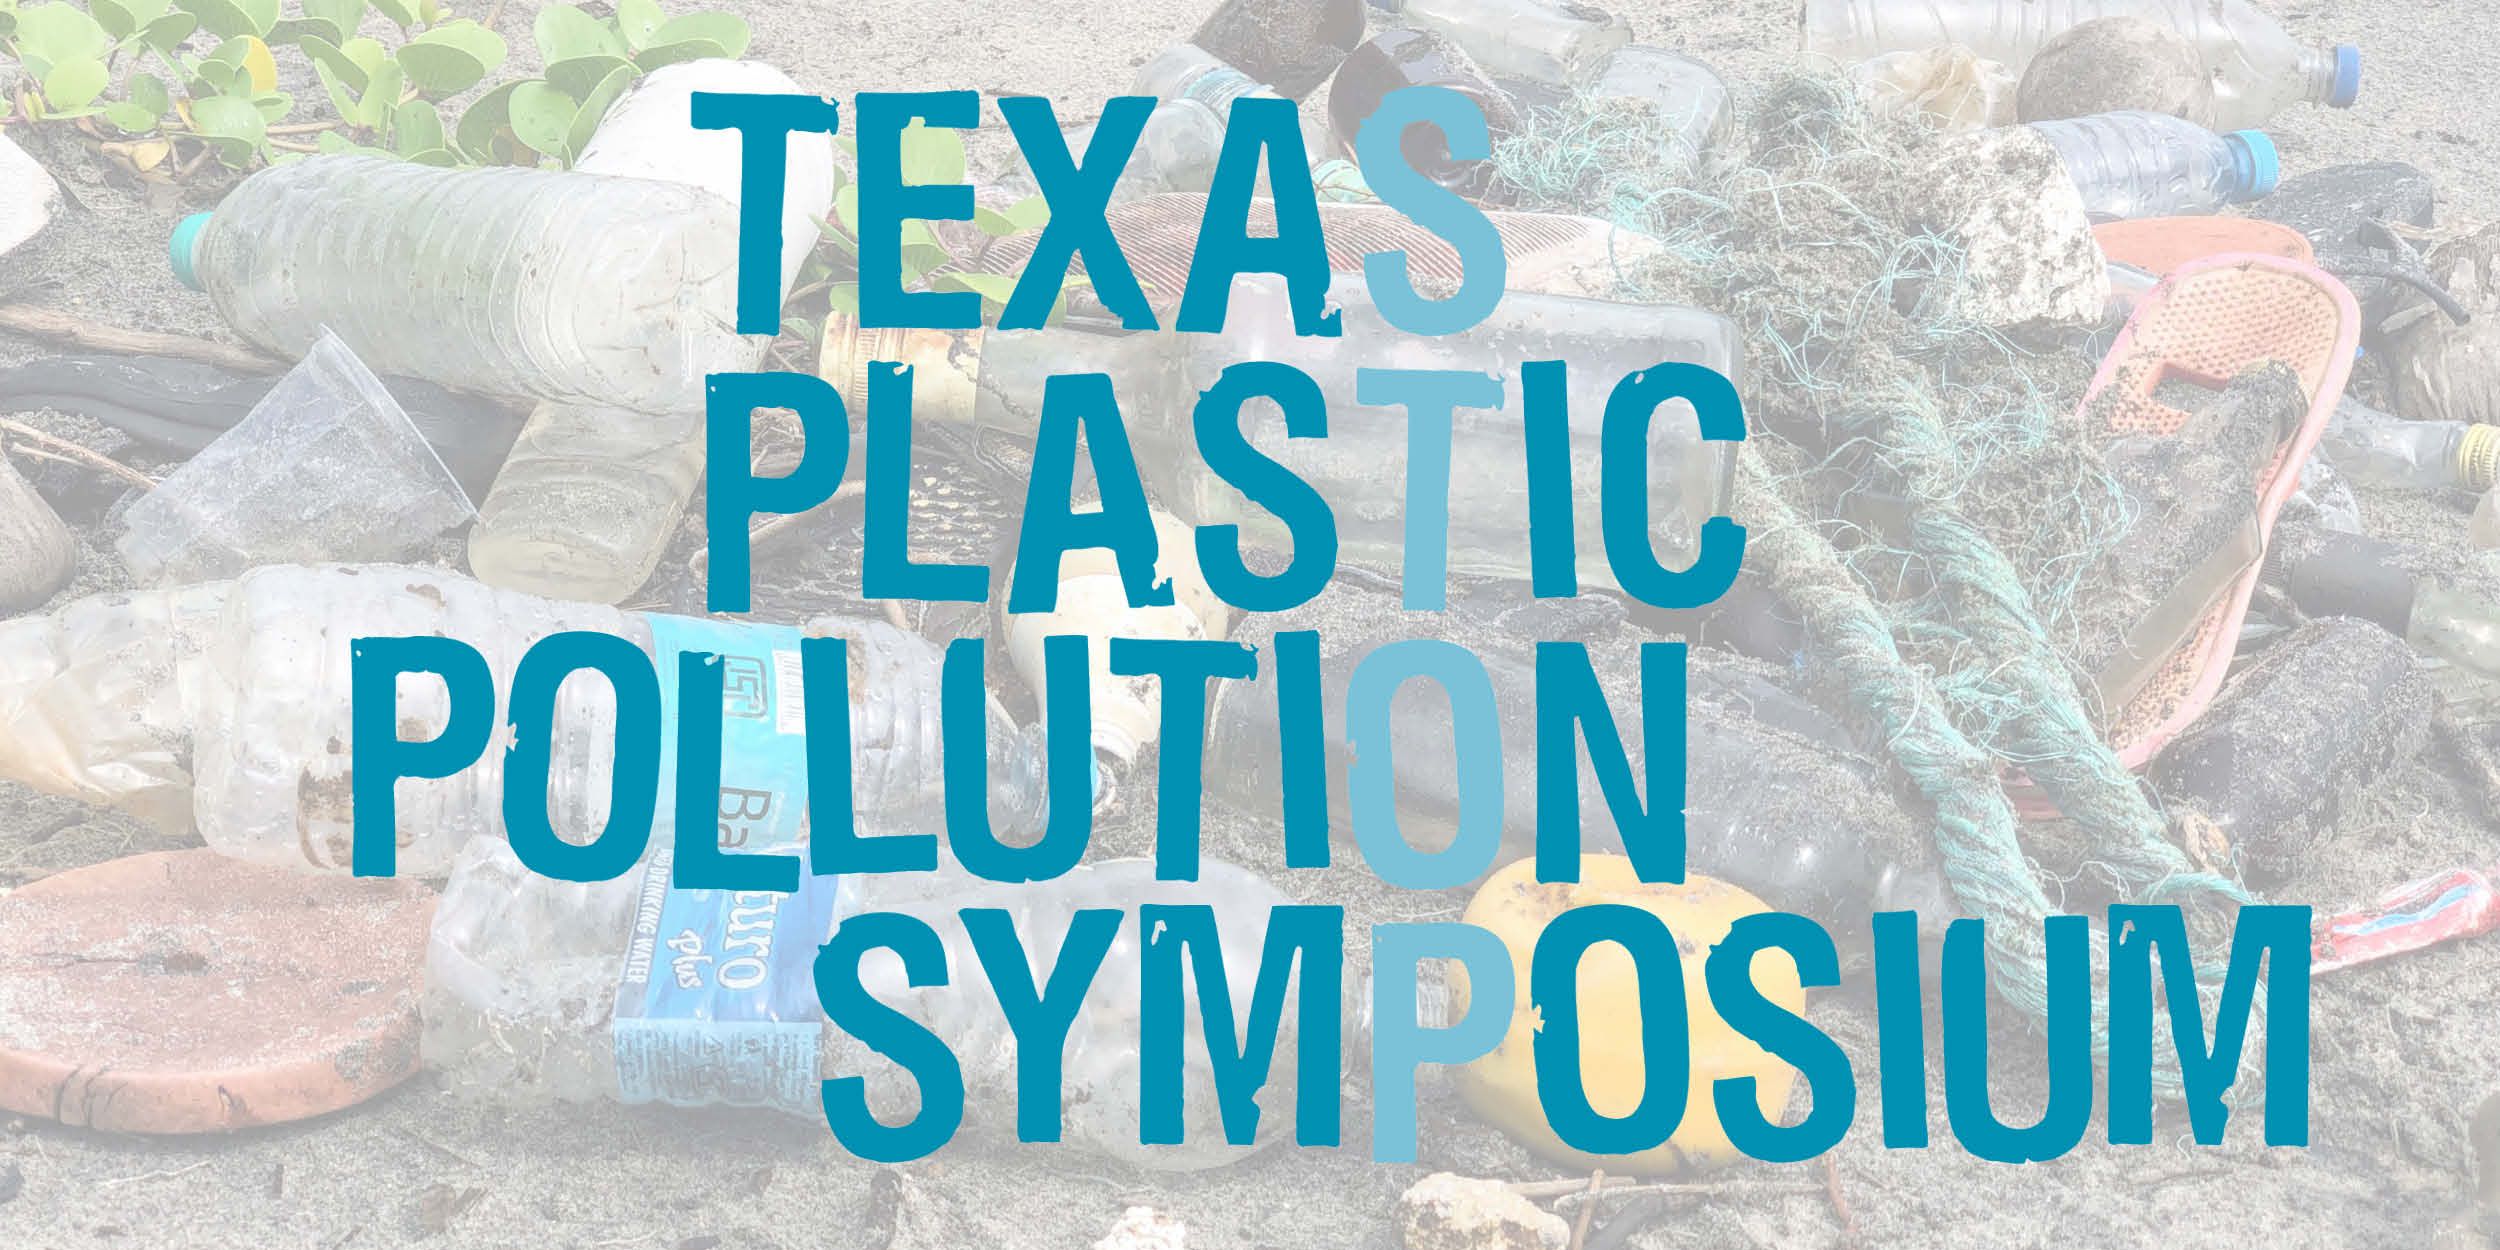 TIRN Attends Second Annual Texas Plastic Pollution Symposium